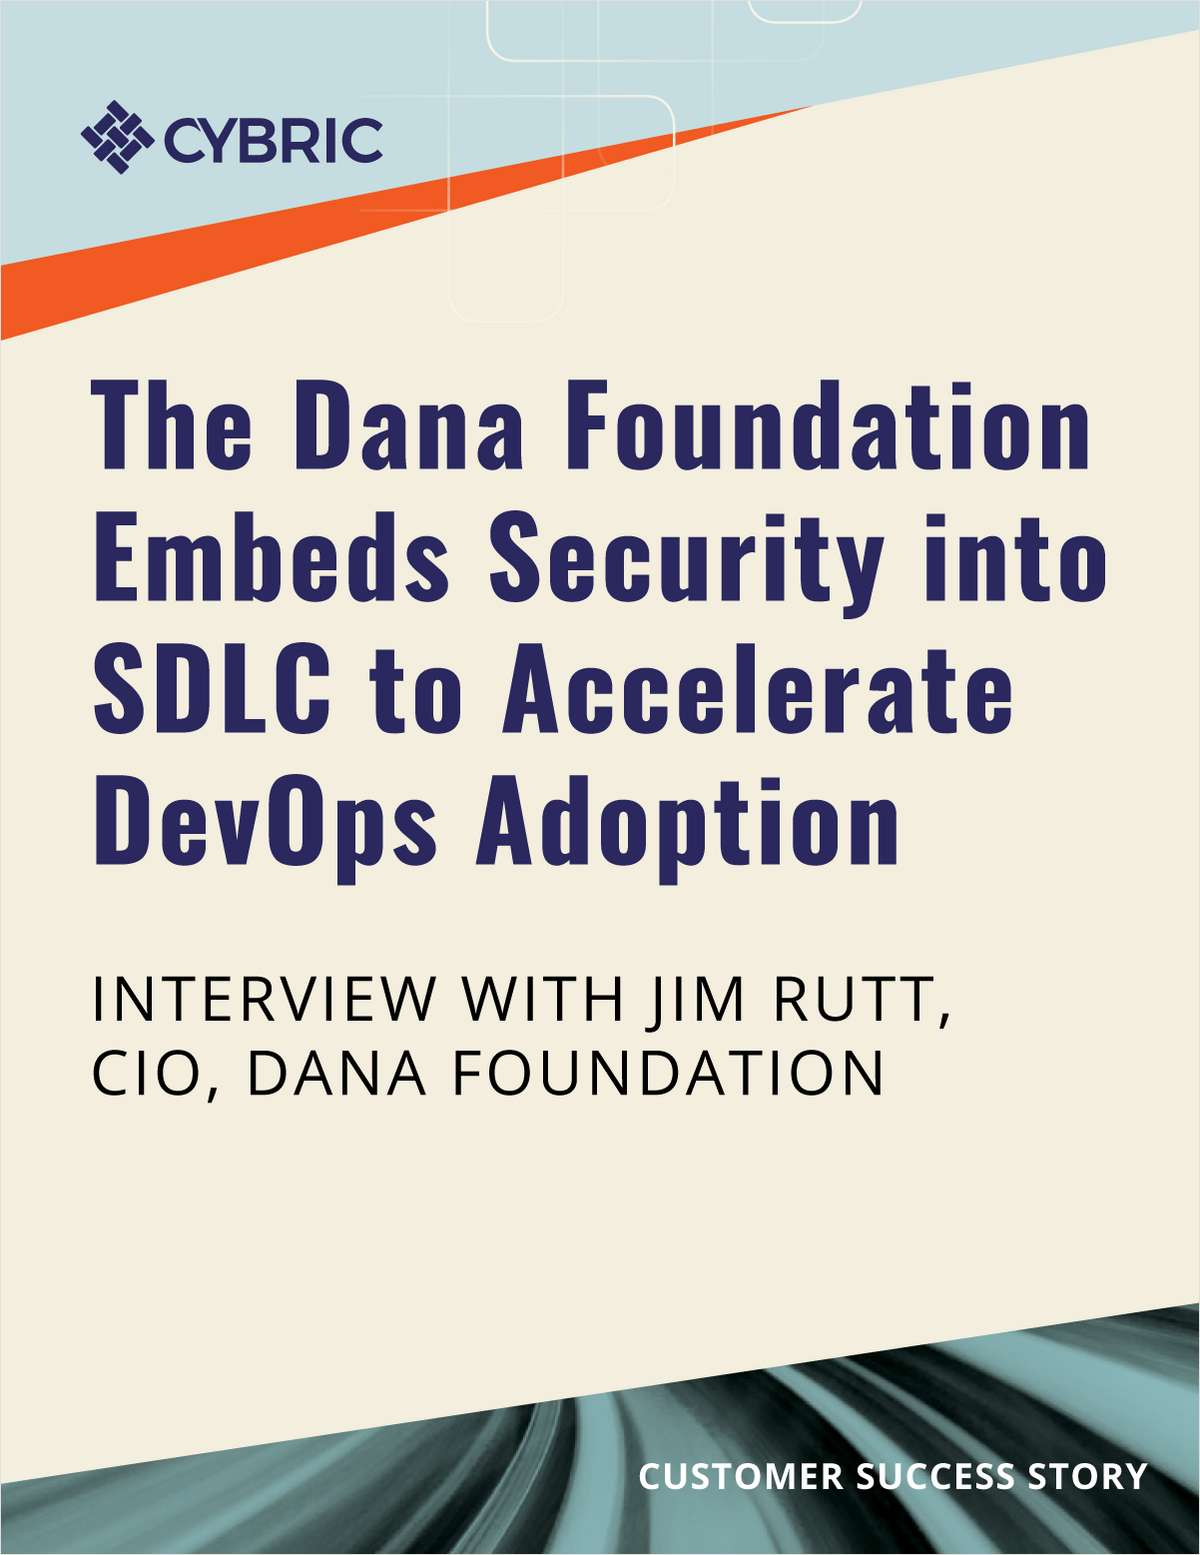 Learn How a Transformative CIO Accelerated DevOps Adoption by Embedding Security into the SDLC